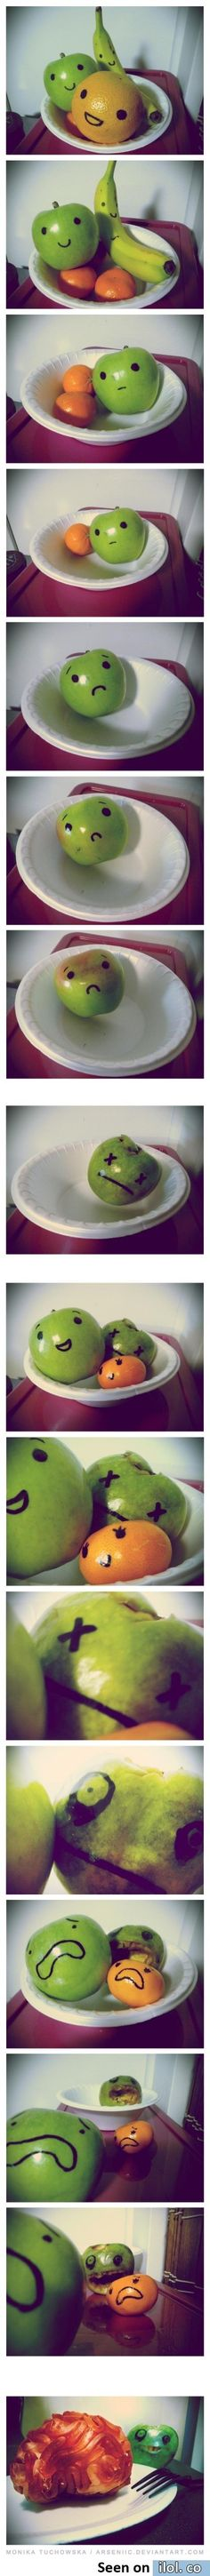 A Fruit Story. Lol funny, made me laugh the first time I saw it (: Funny Shit, Funny Pins, Haha Funny, Funny Cute, Funny Memes, Hilarious, Jokes, Funny Stuff, Doug Funnie